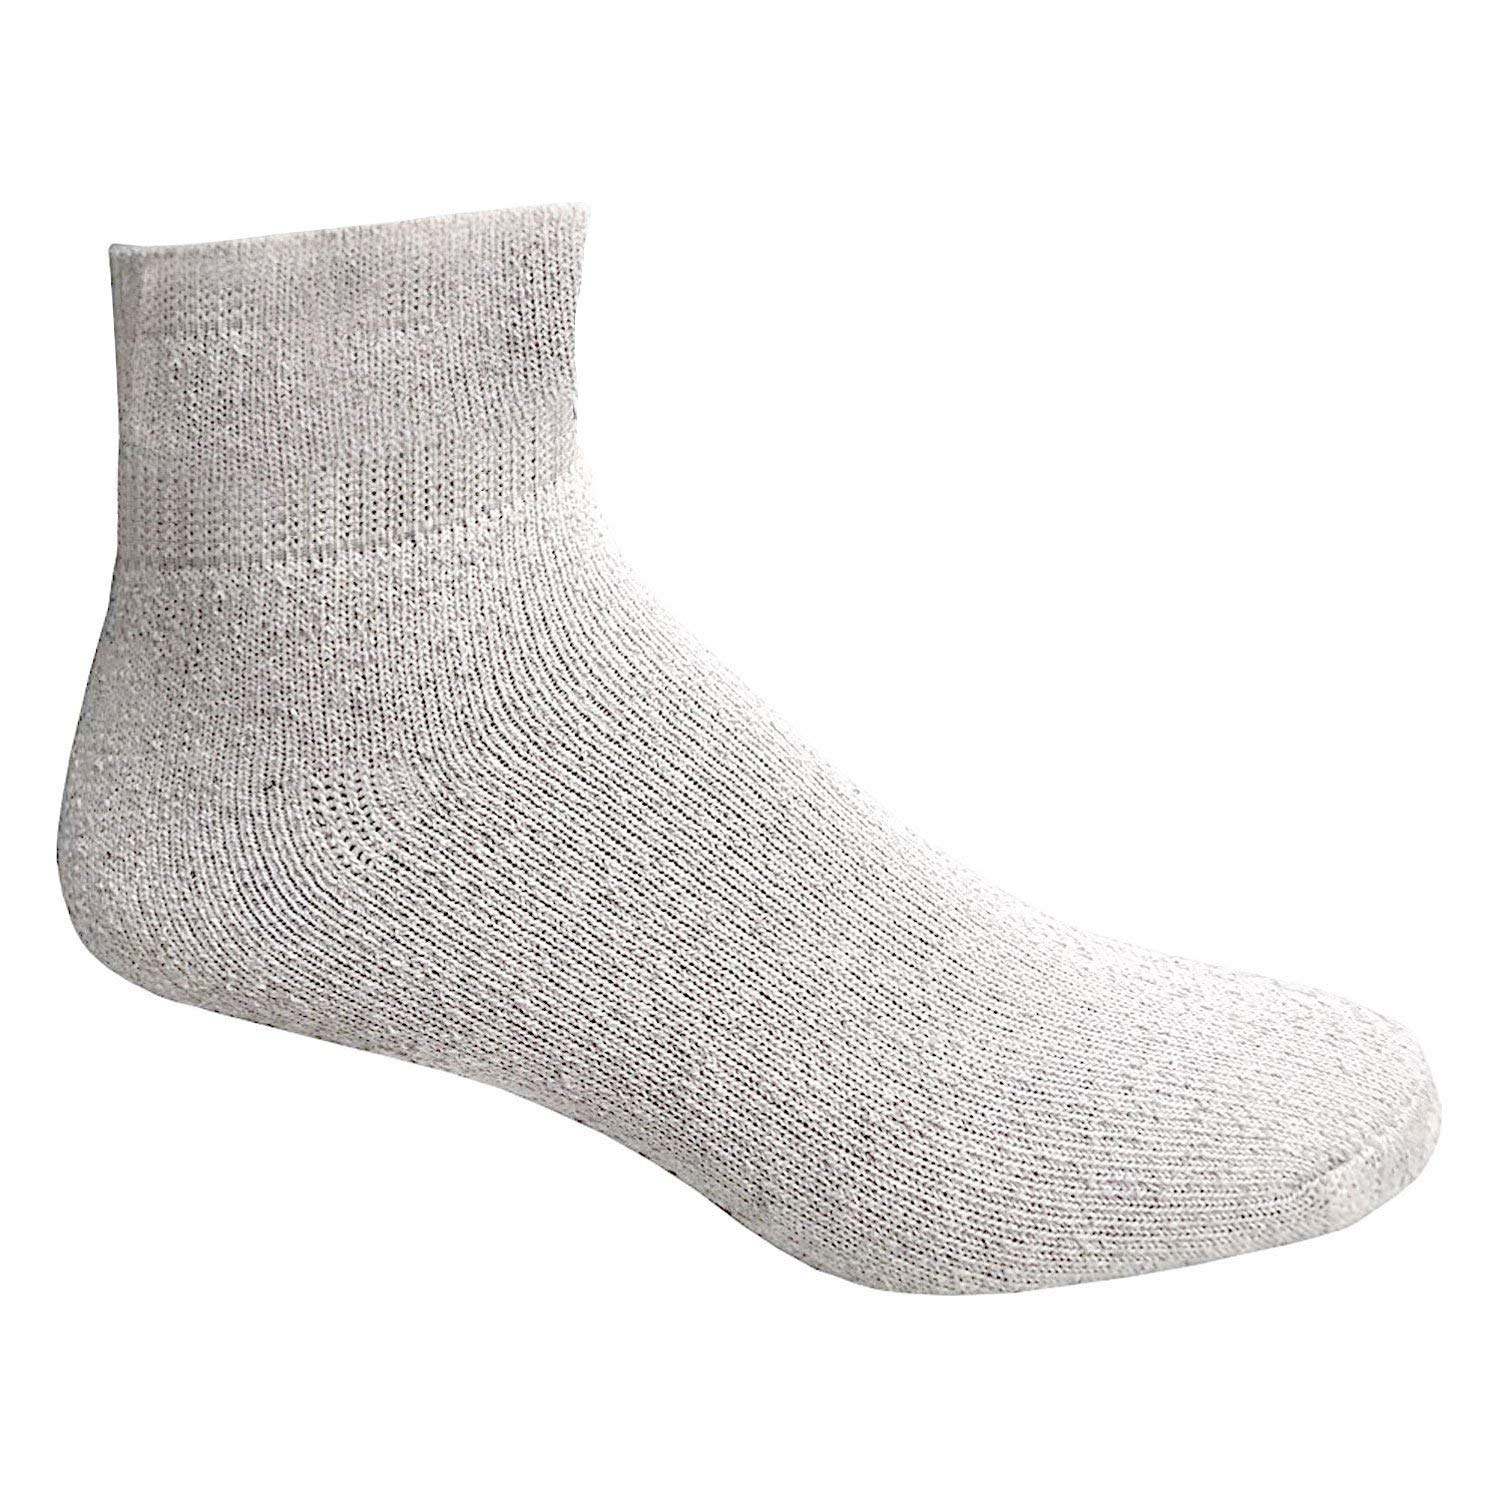 Mens King Size Cotton Quarter Ankle Socks Plus Size White Ankle Sock 13-16 60 pc